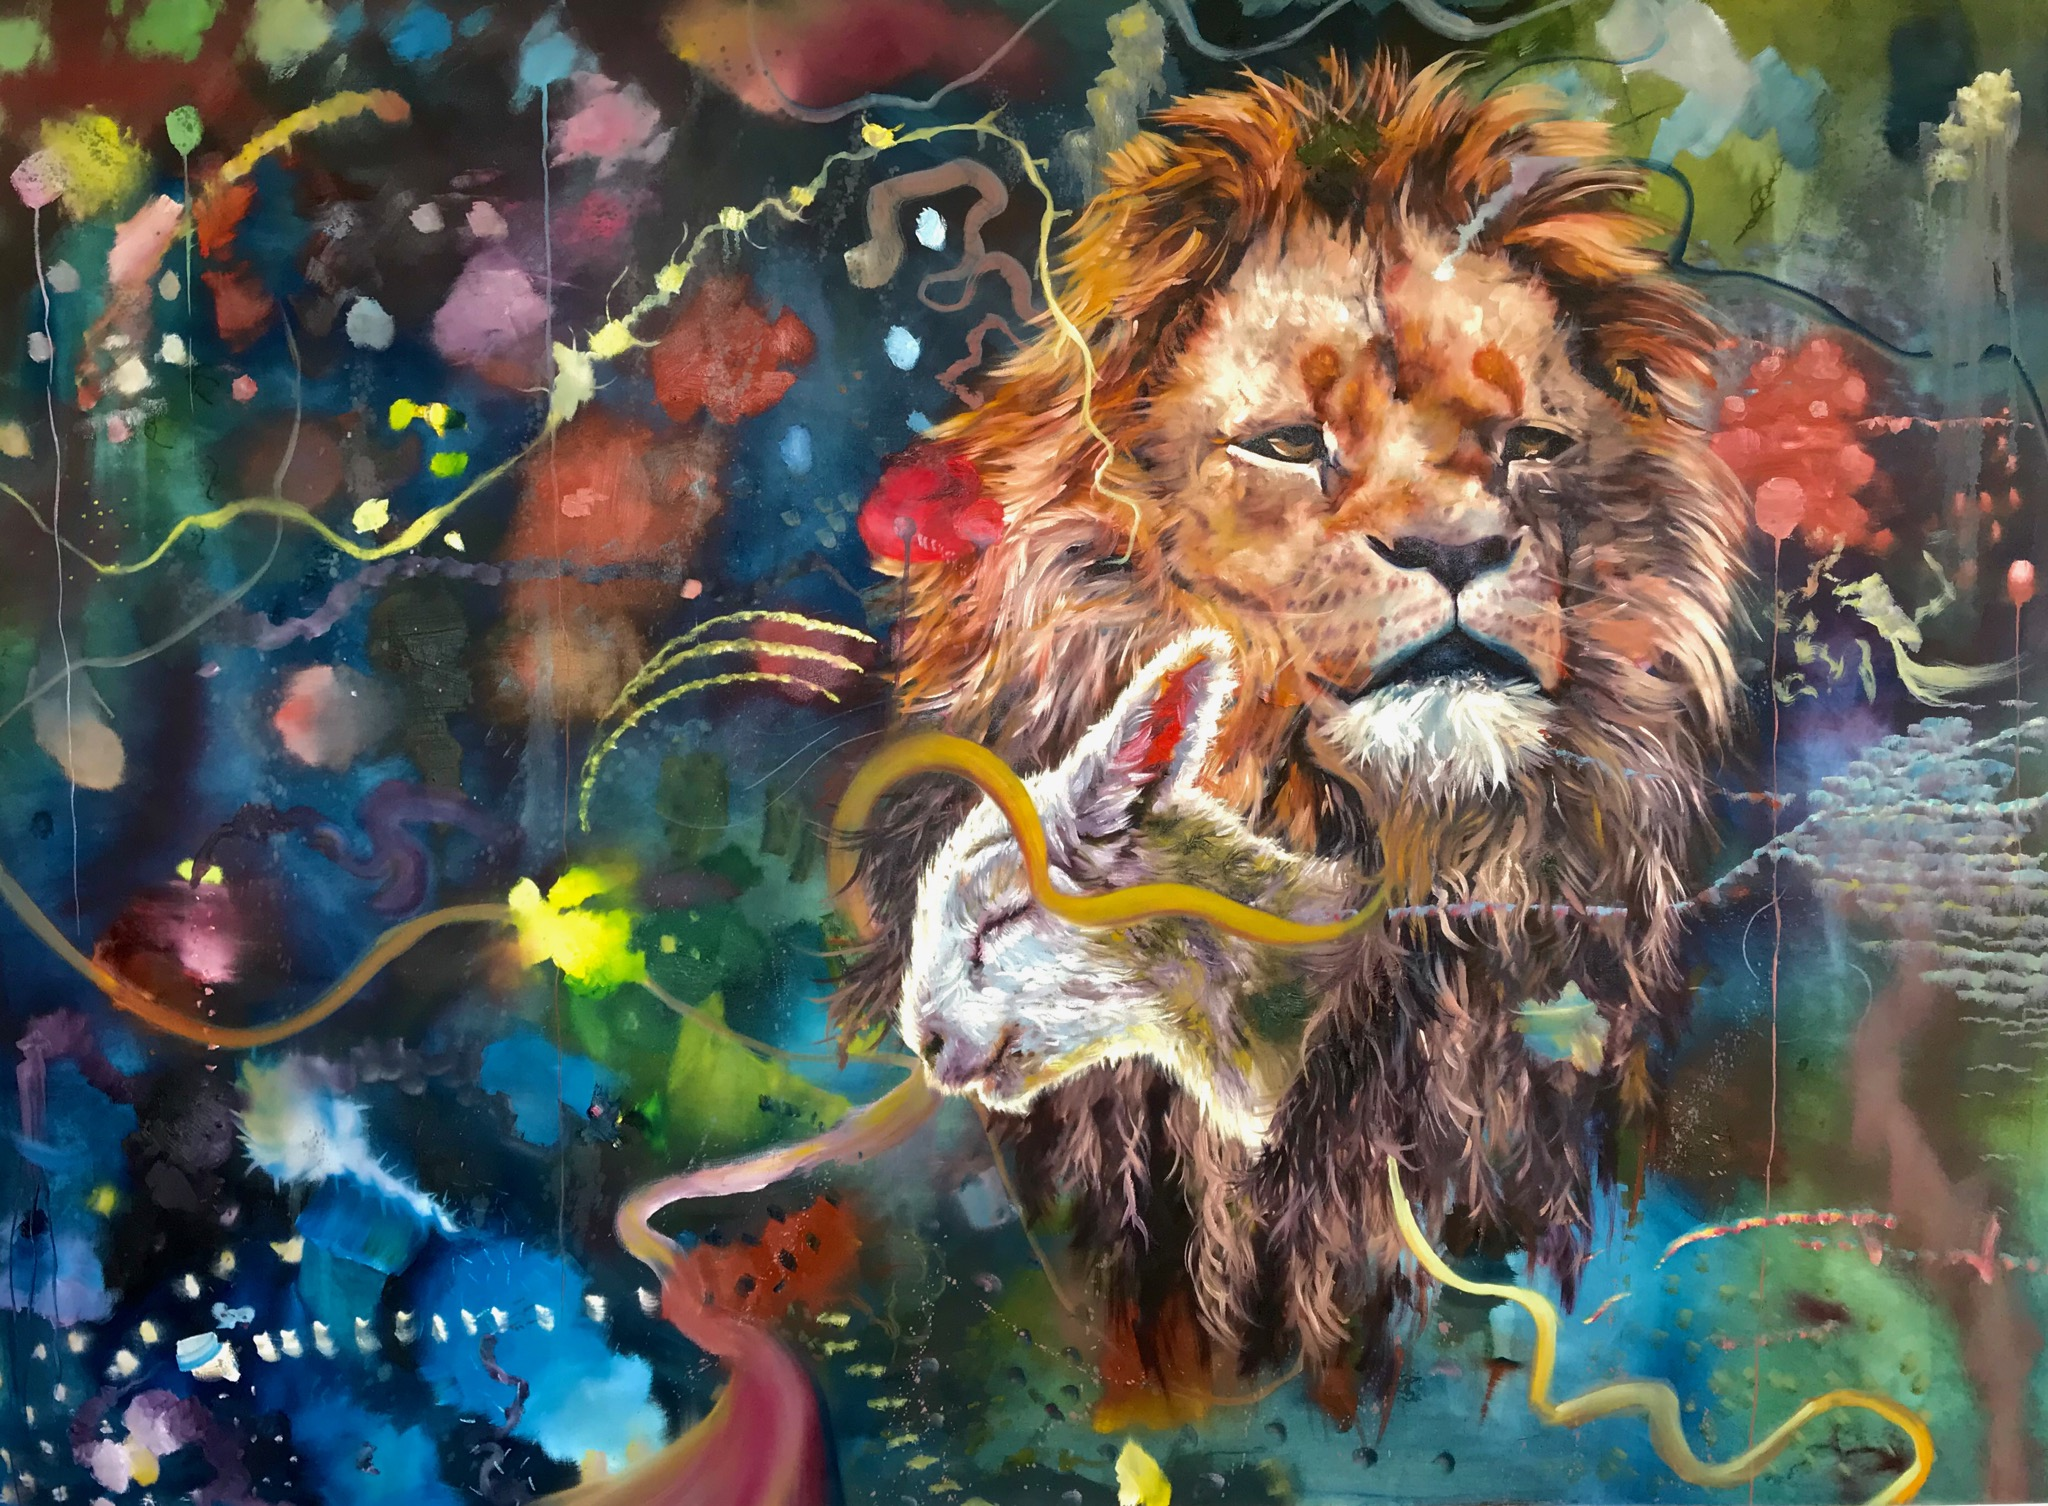 LION AND LAMB, oil on canvas, 72 x 96 inches, 2018